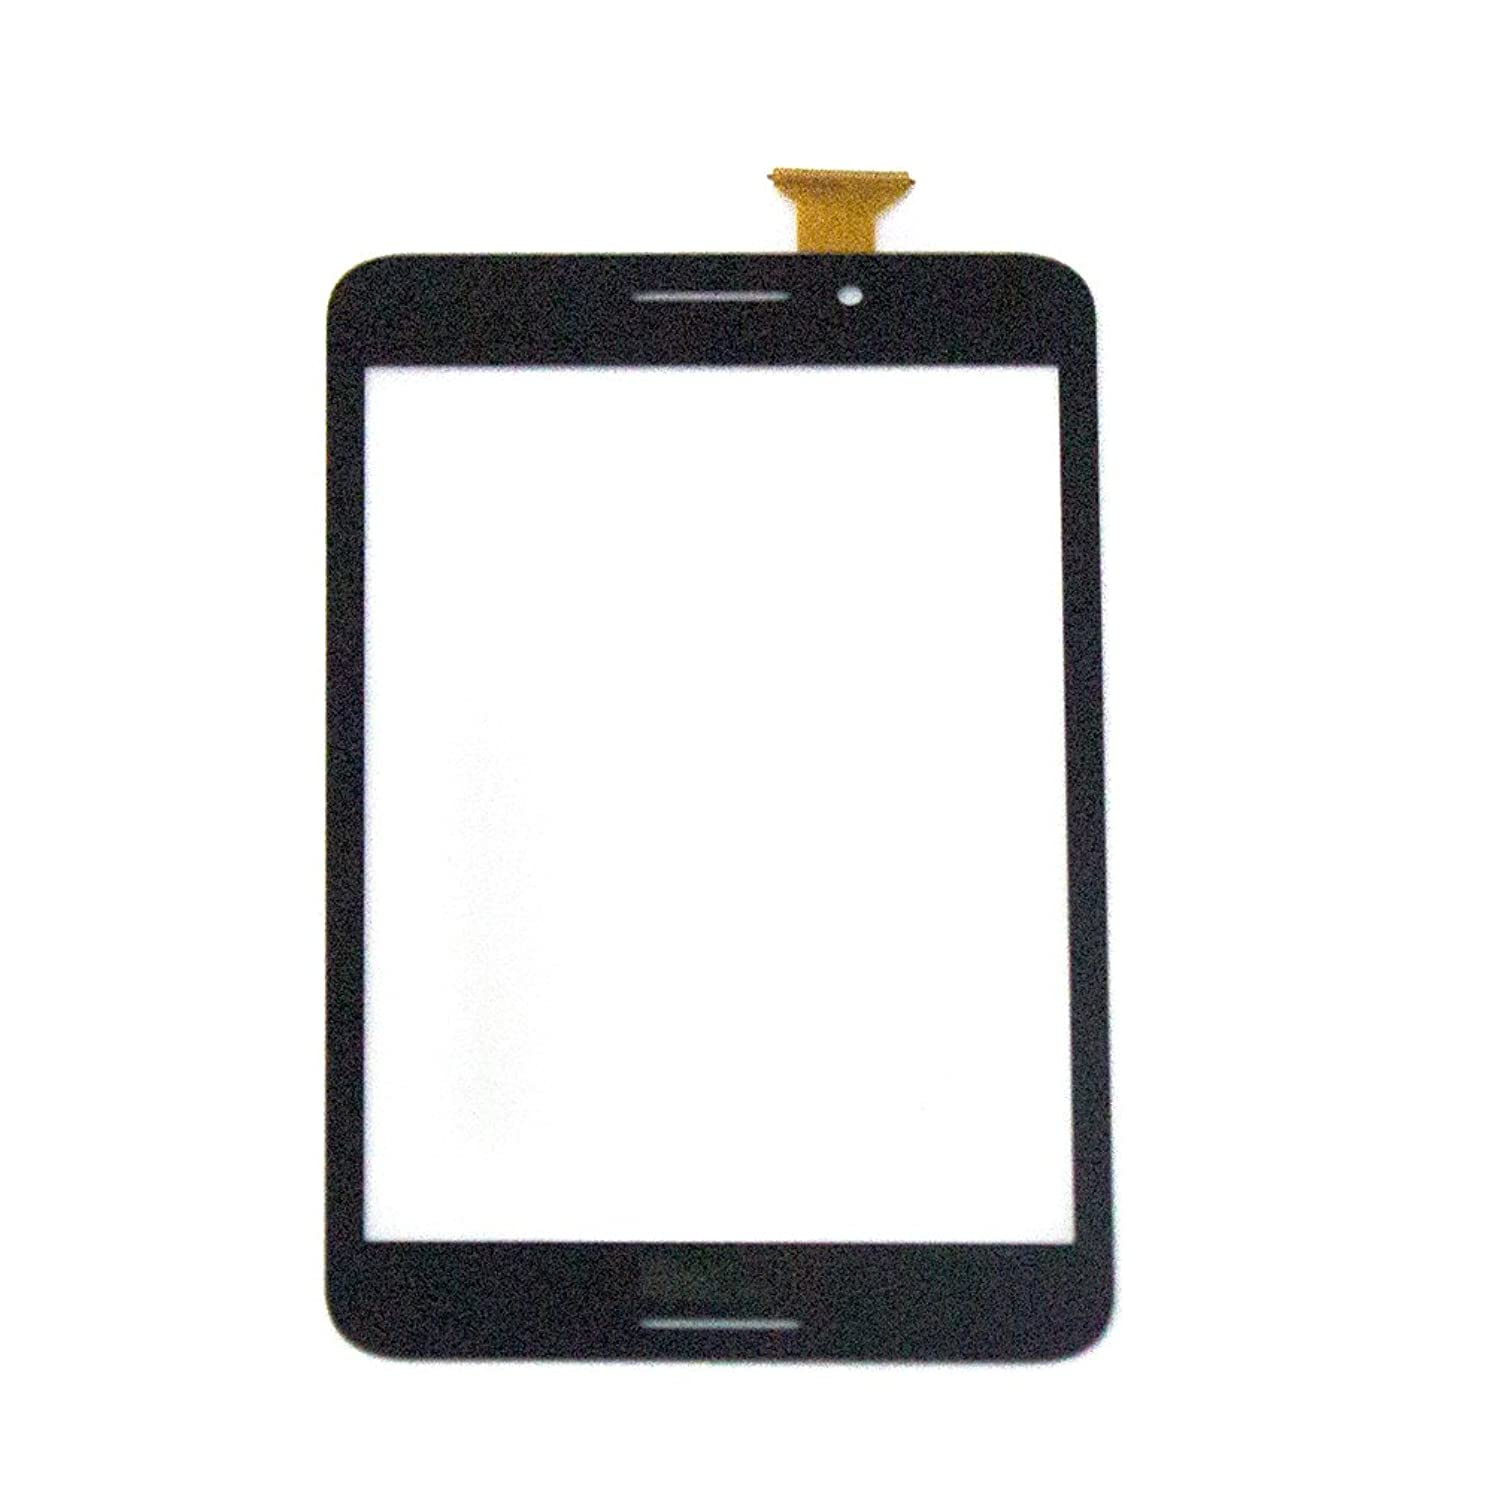 Digitalsync-touch Screen Digitizer Glass Lens for Asus Memo Pad 7 Me375cl Black